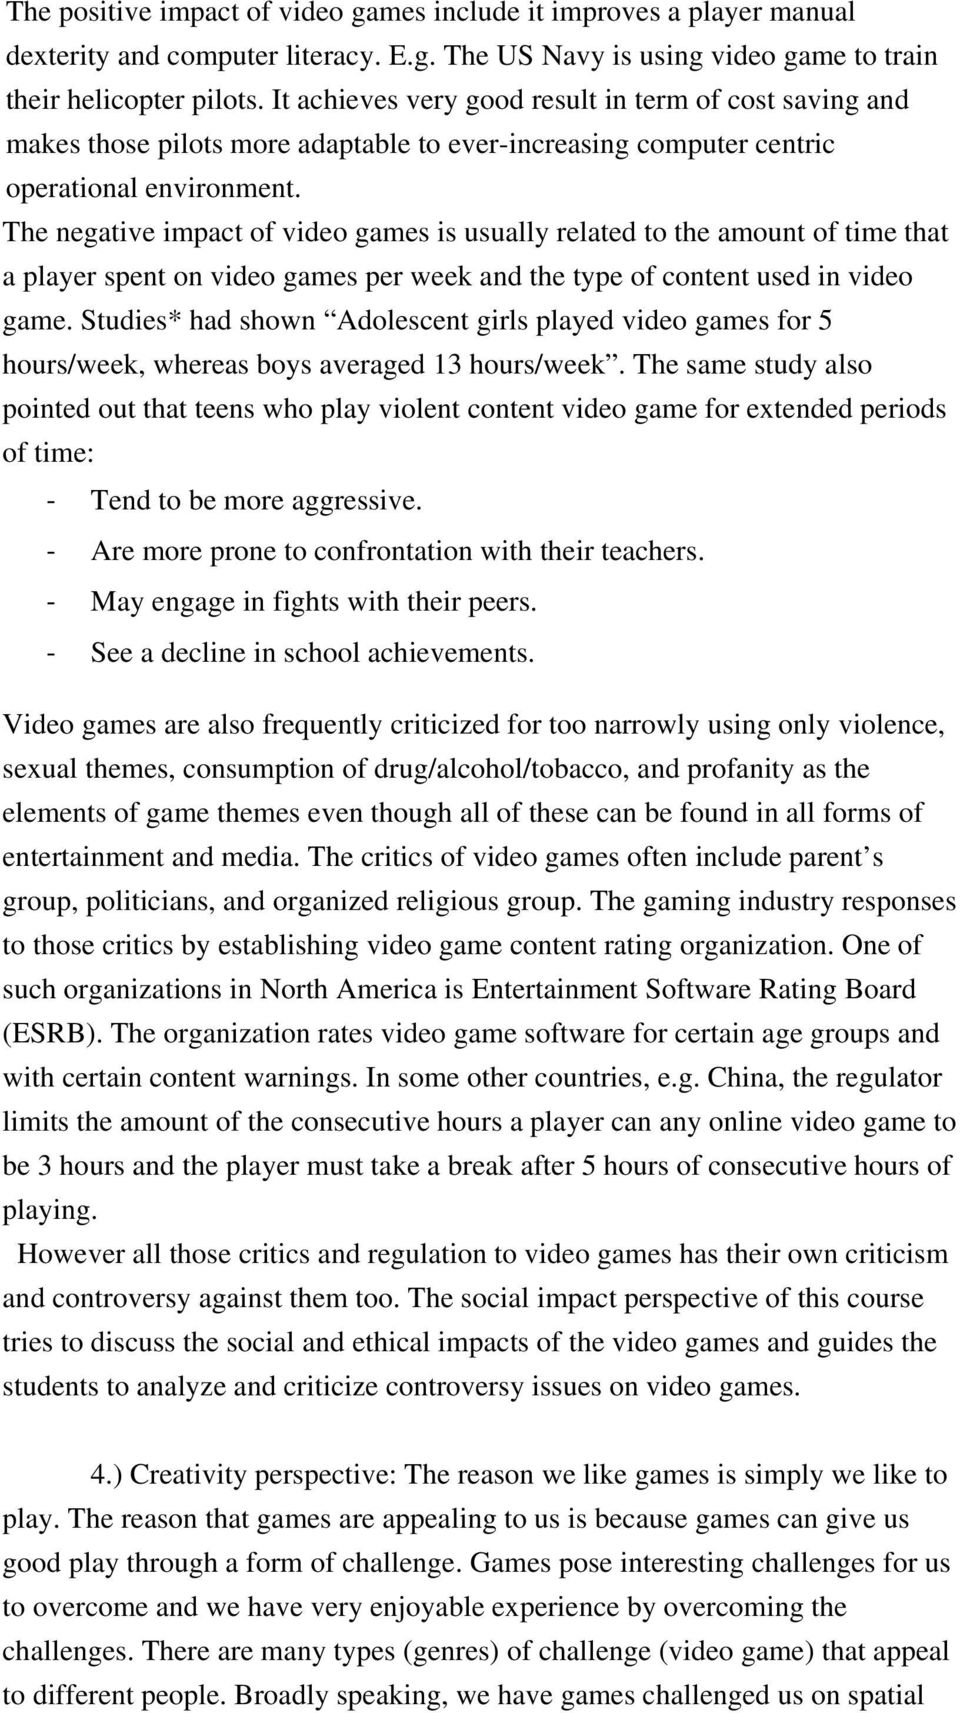 The negative impact of video games is usually related to the amount of time that a player spent on video games per week and the type of content used in video game.